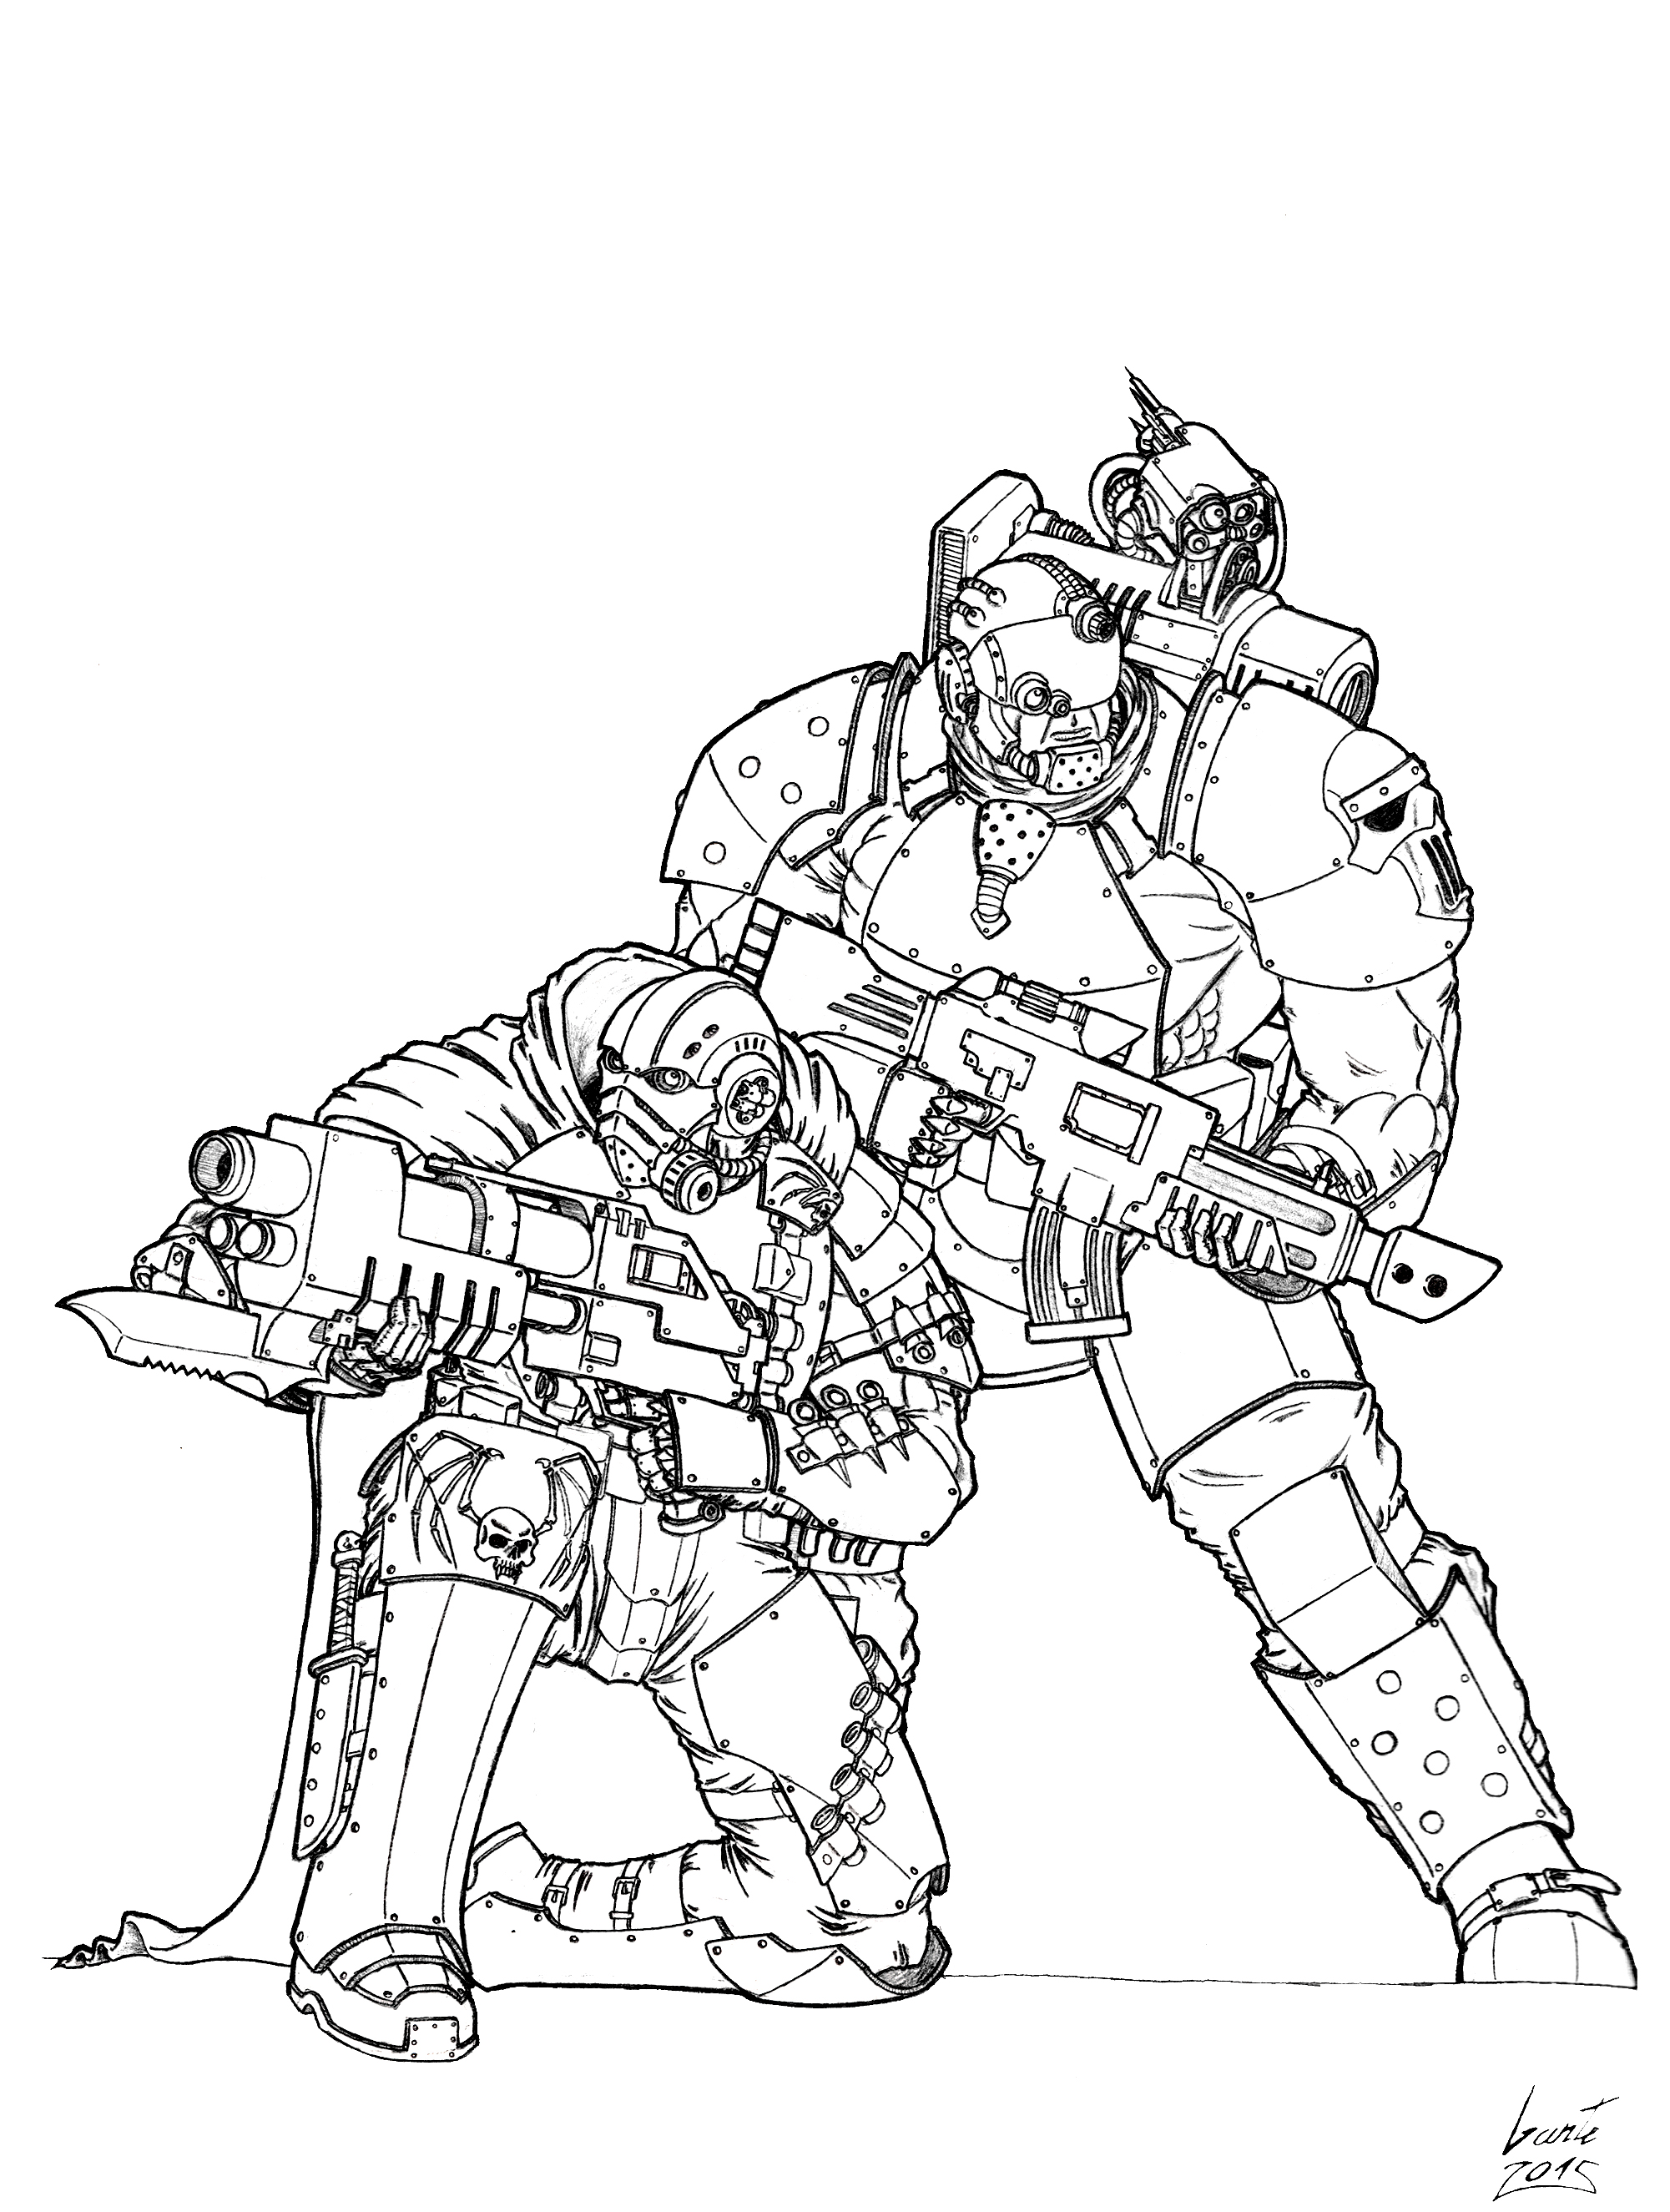 Pre-Heresy Recon Marines by Greyall